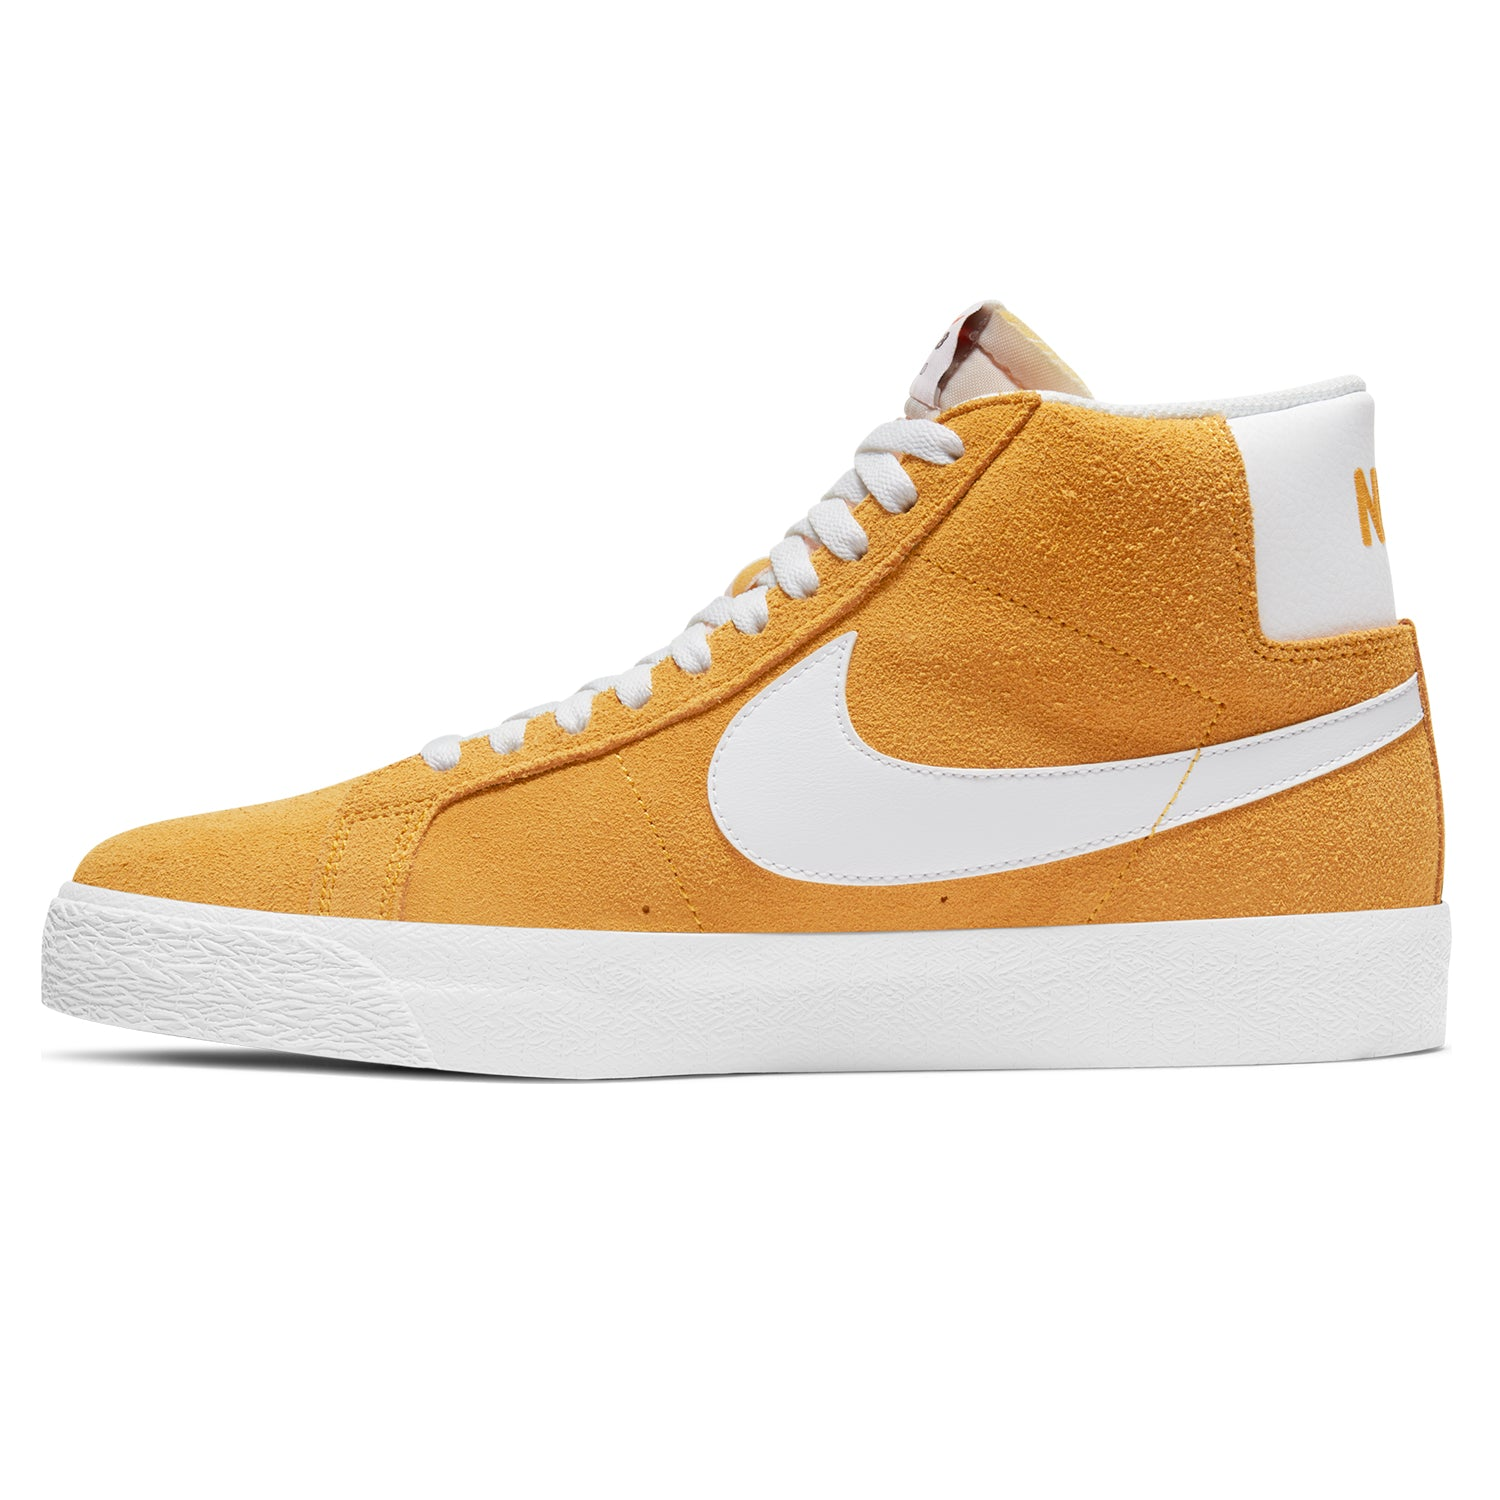 Nike SB Zoom Blazer Mid University Gold/White